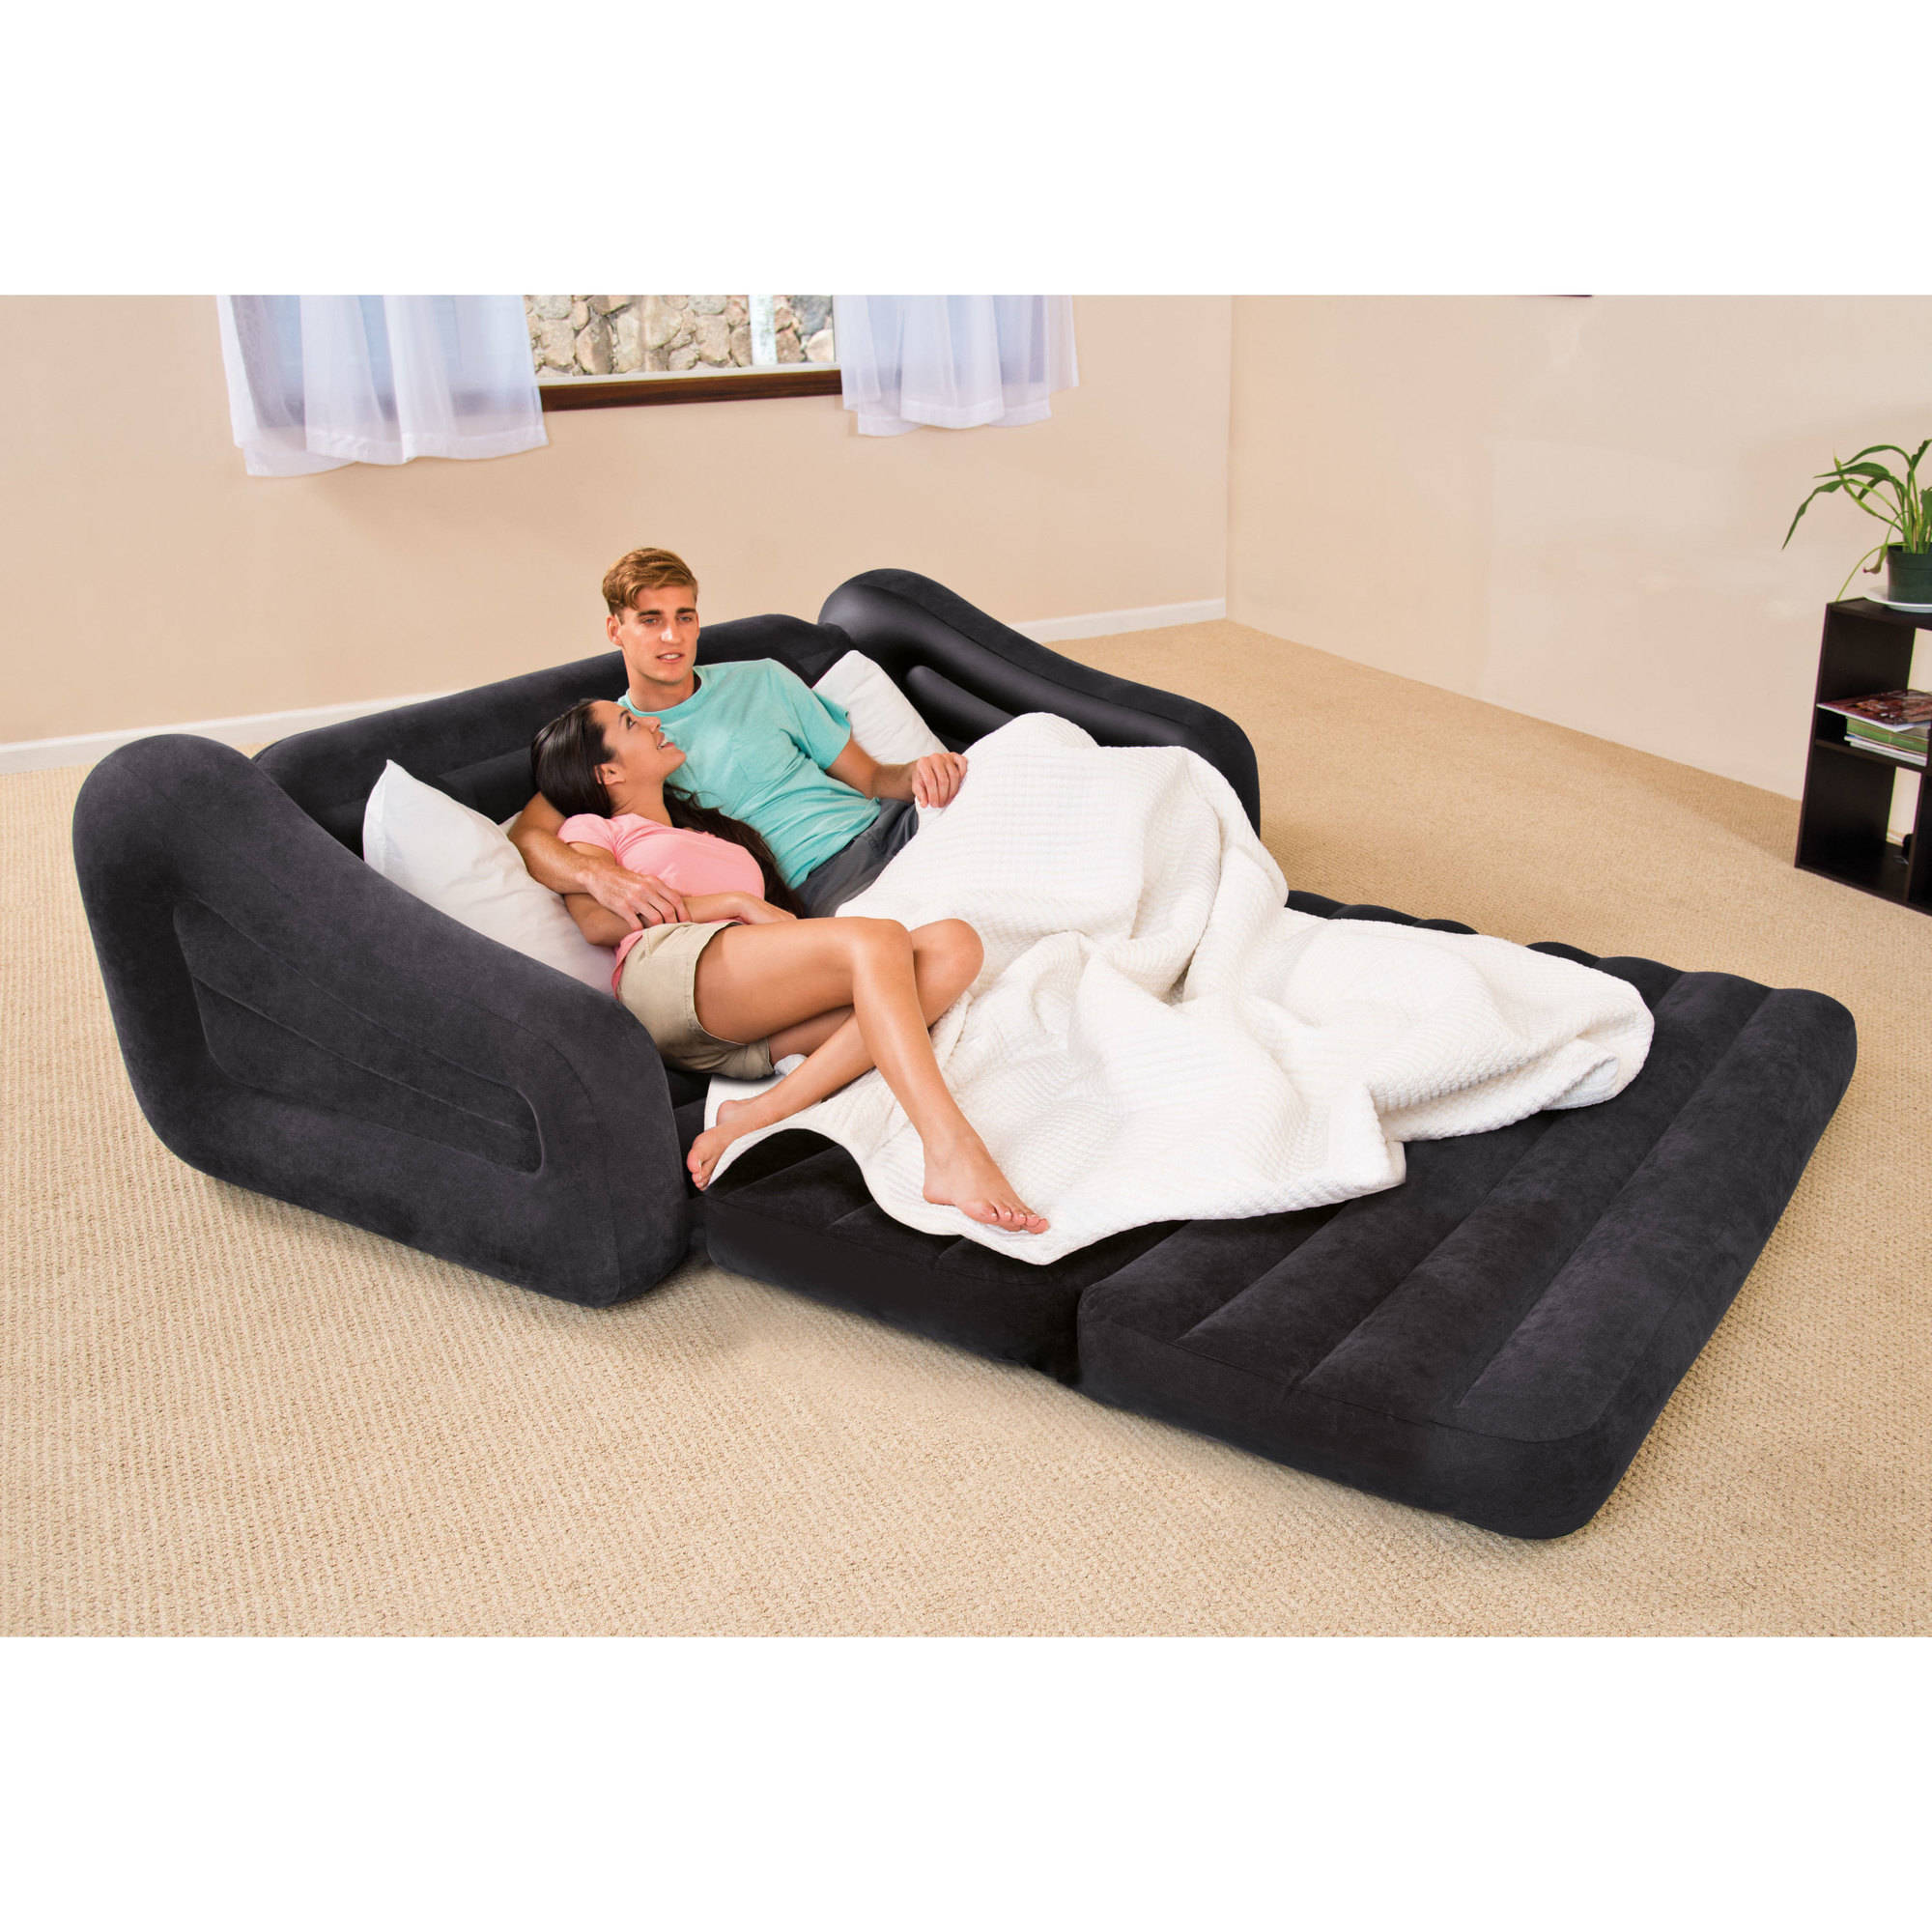 couch bed intex queen inflatable pull out sofa bed ZFNAUOH